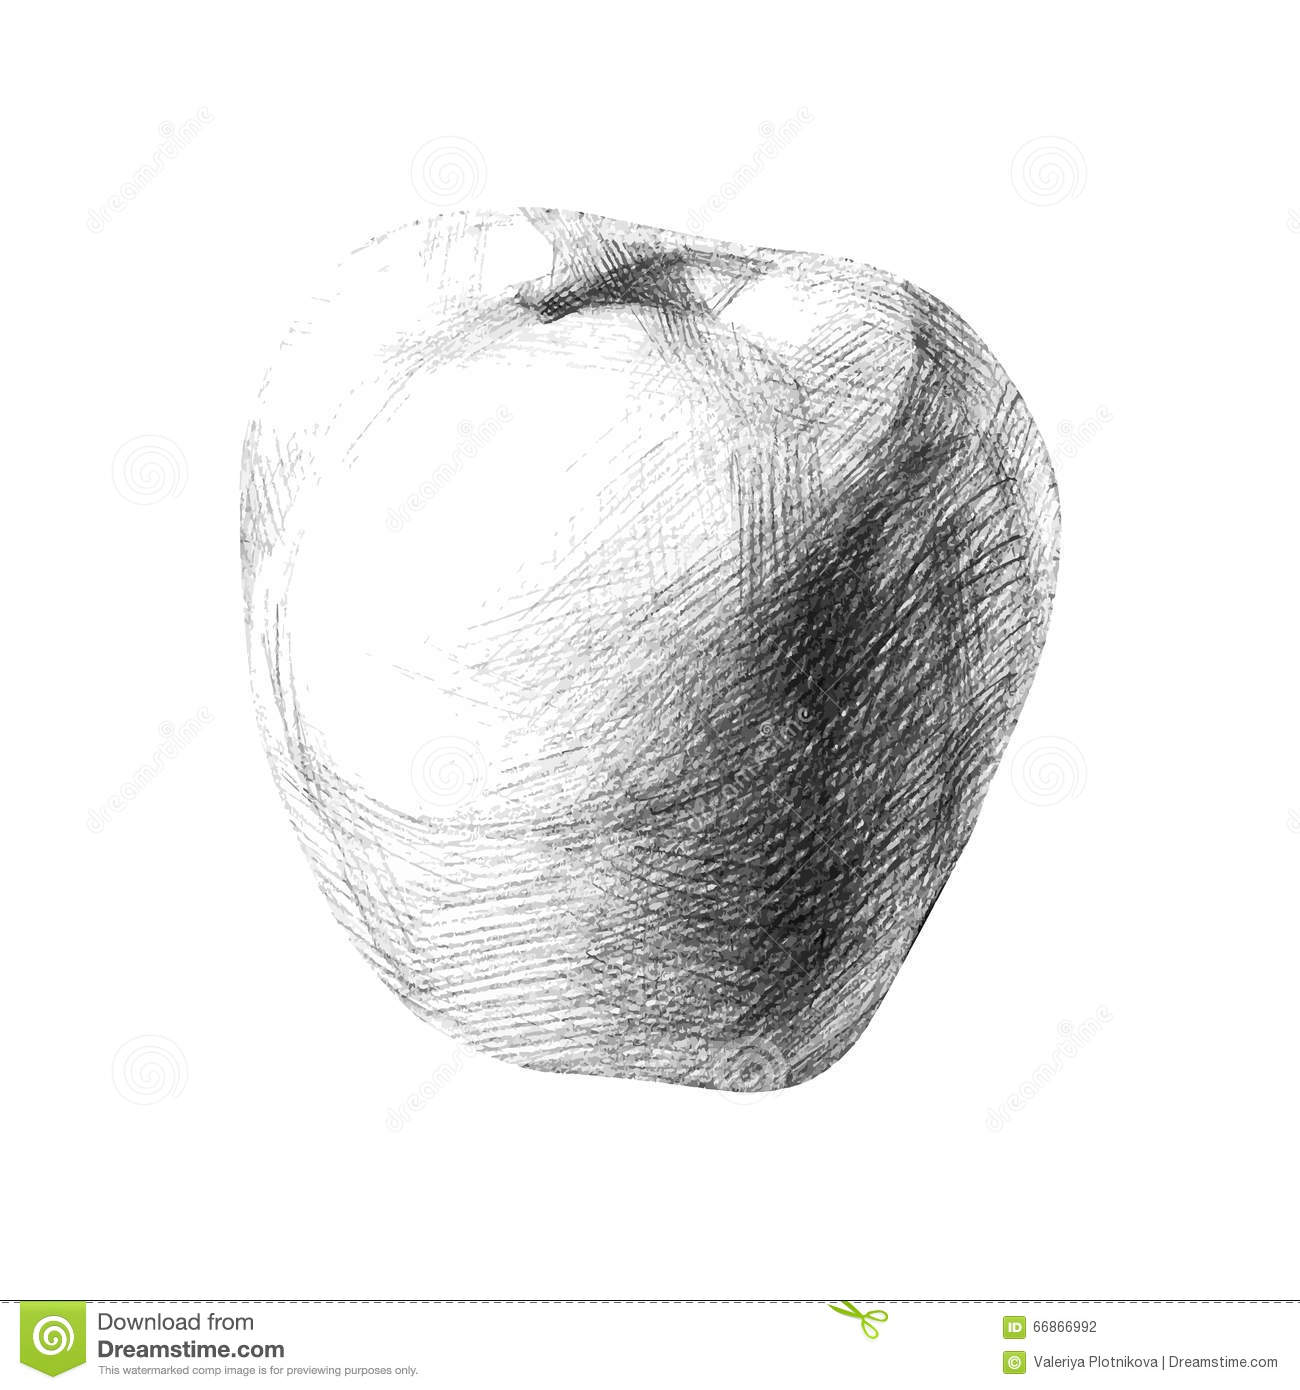 Illustration with a pencil sketch apple